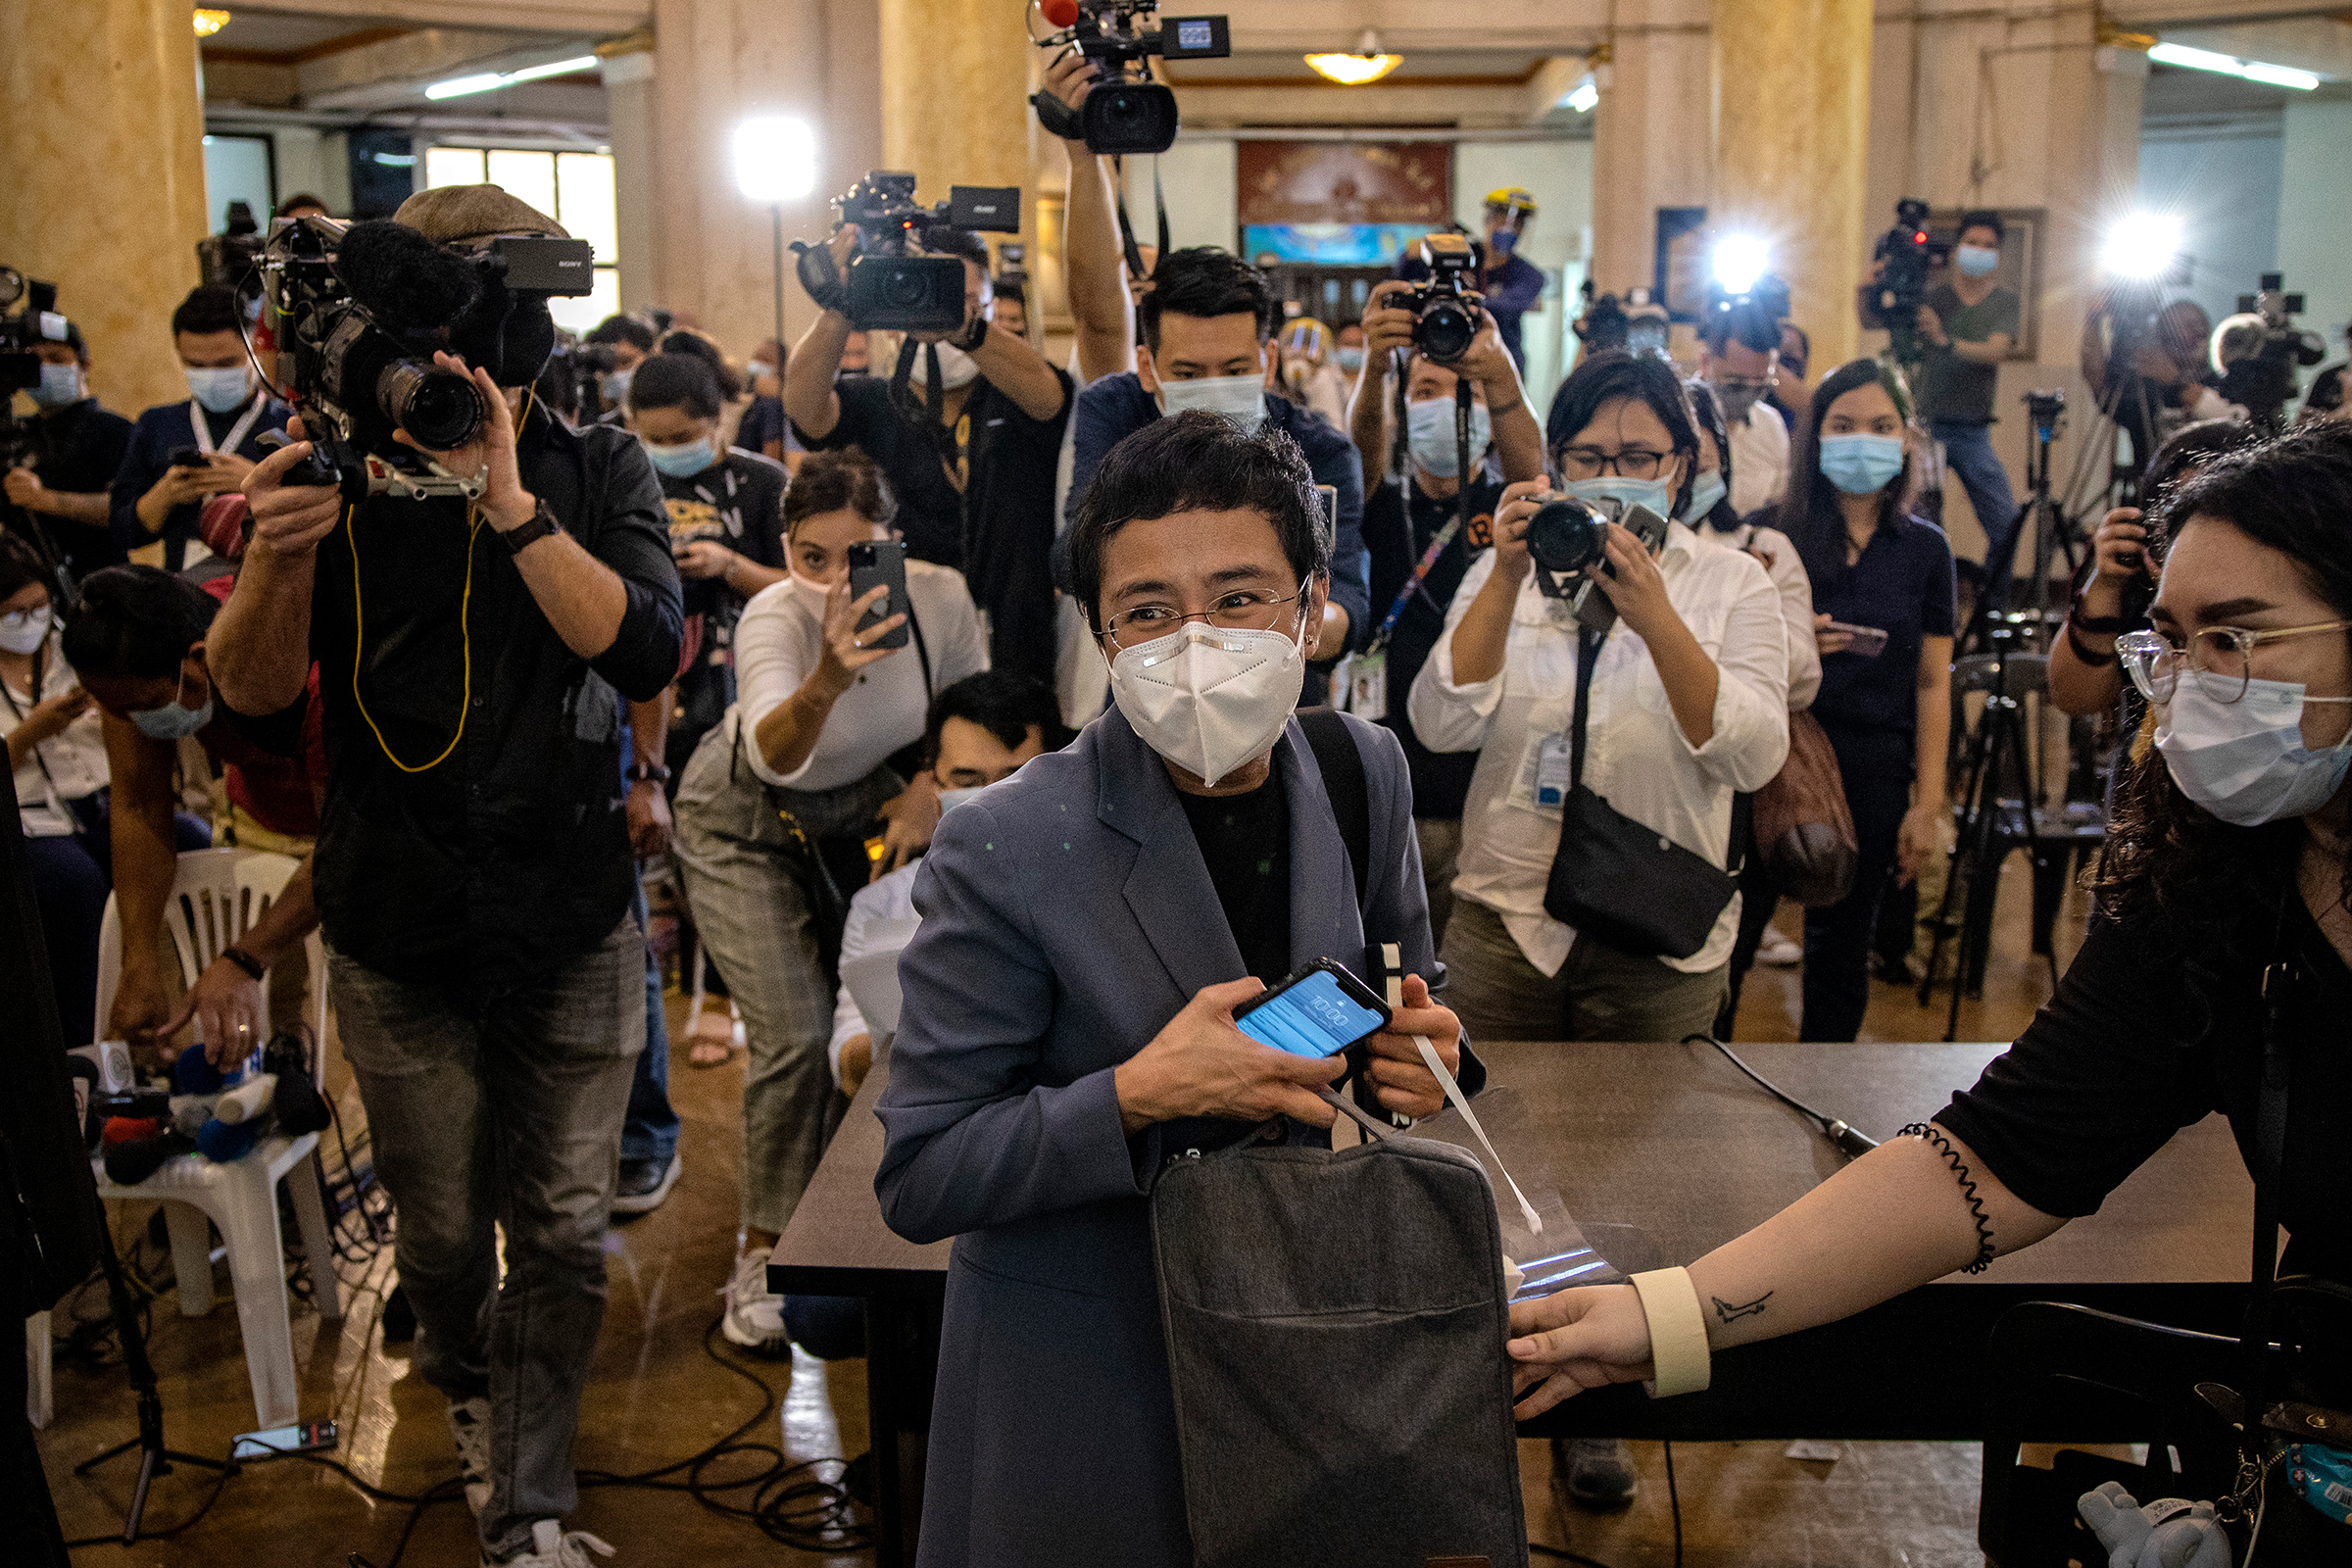 Maria Ressa, editor and CEO of Rappler, leaves a regional trial court after being convicted for cyber libel, in Manila on June 15, 2020. Ressa and Dmitry Muratov of Russia were awarded the 2021 Nobel Peace Prize on Oct. 8.